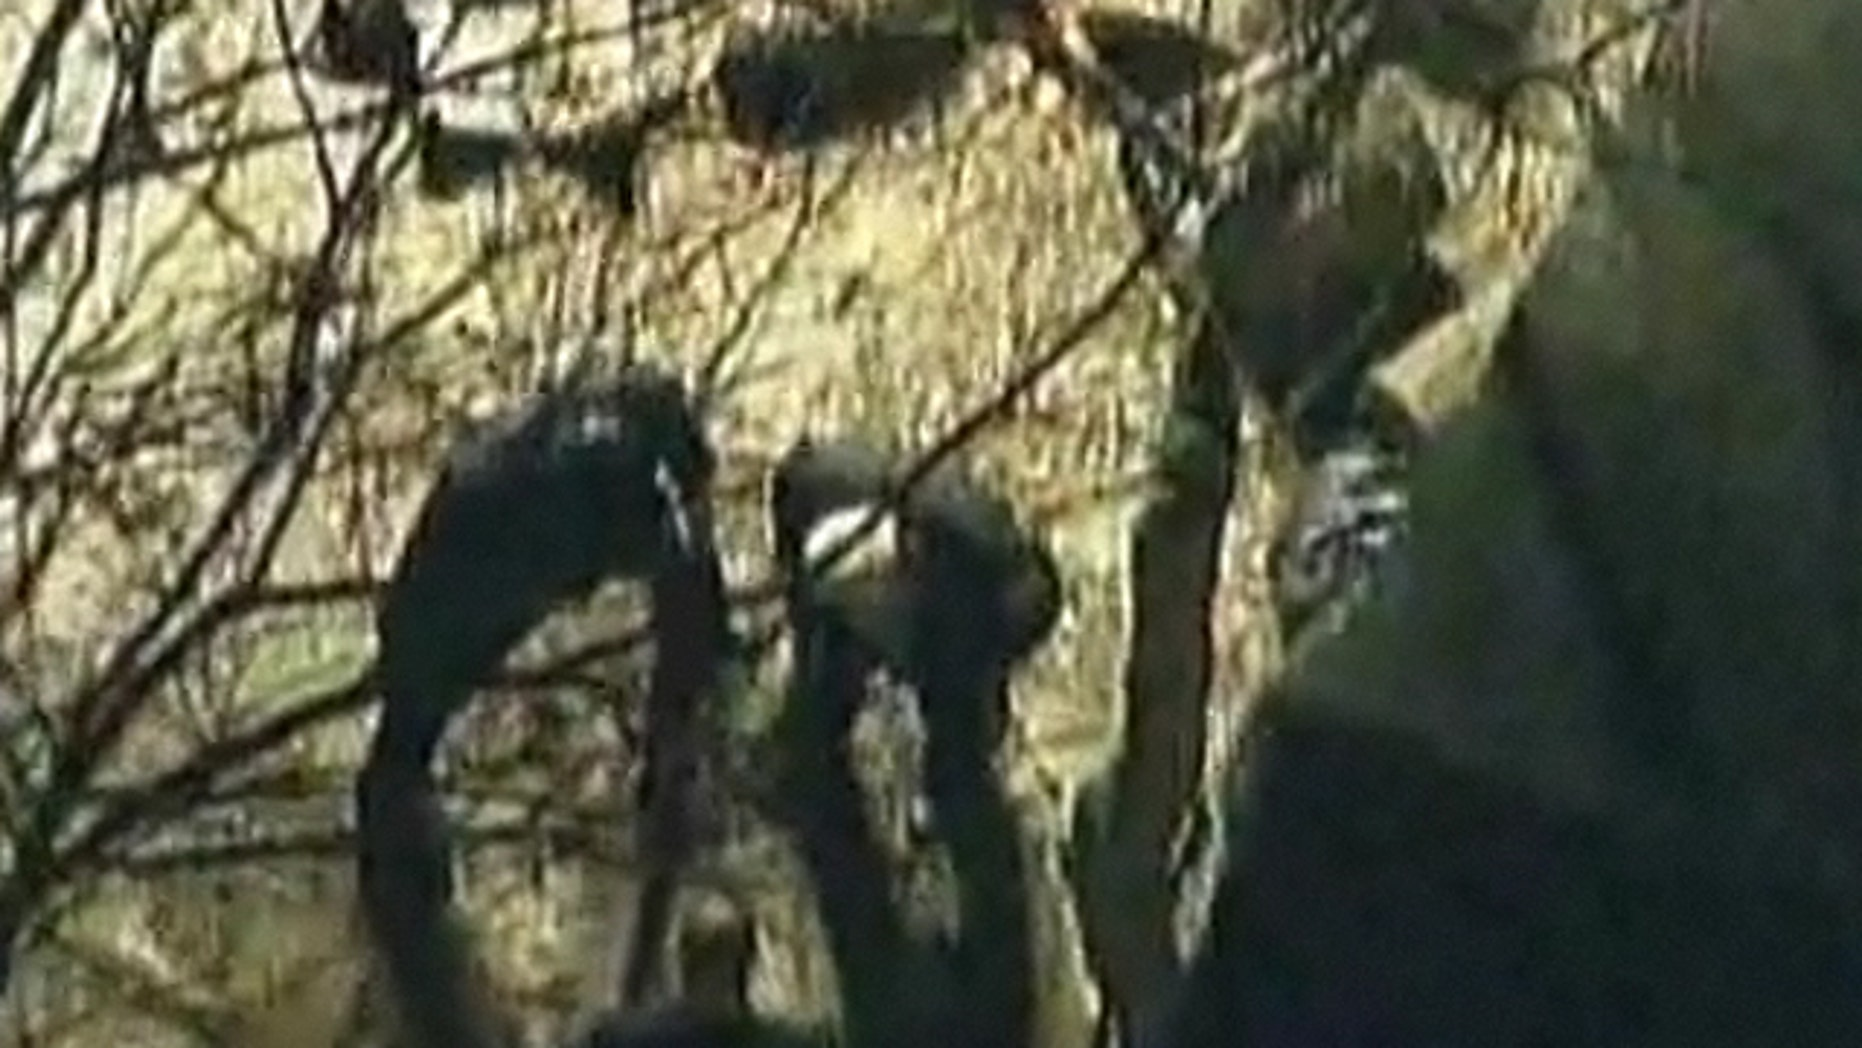 Mar. 12, 2012: Police search for a missing toddler in New Jersey.